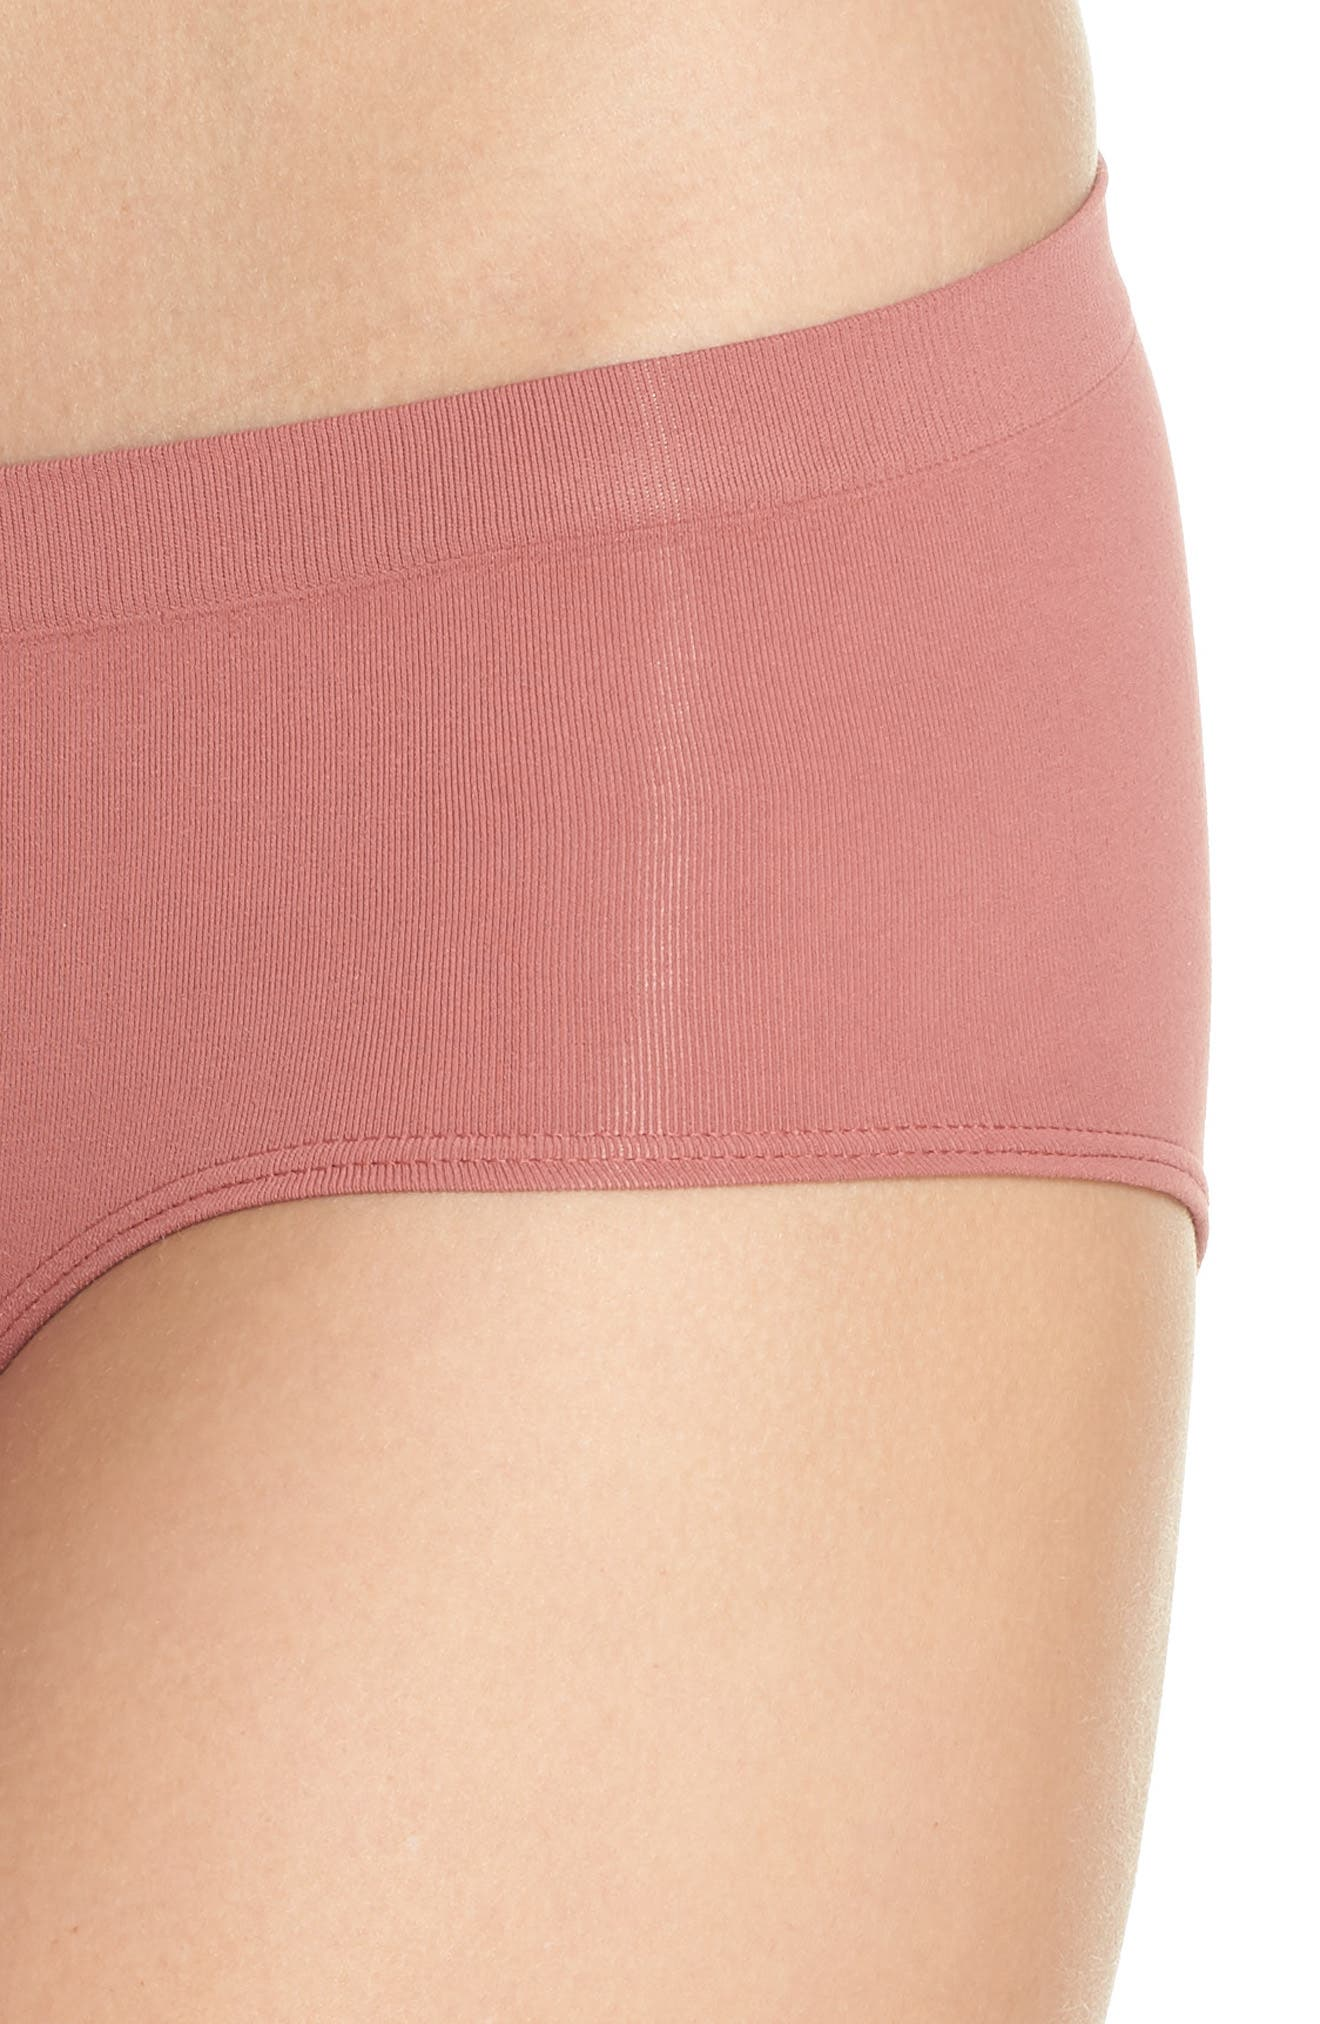 Seamless Hipster Briefs,                             Alternate thumbnail 4, color,                             PINK TAFFY